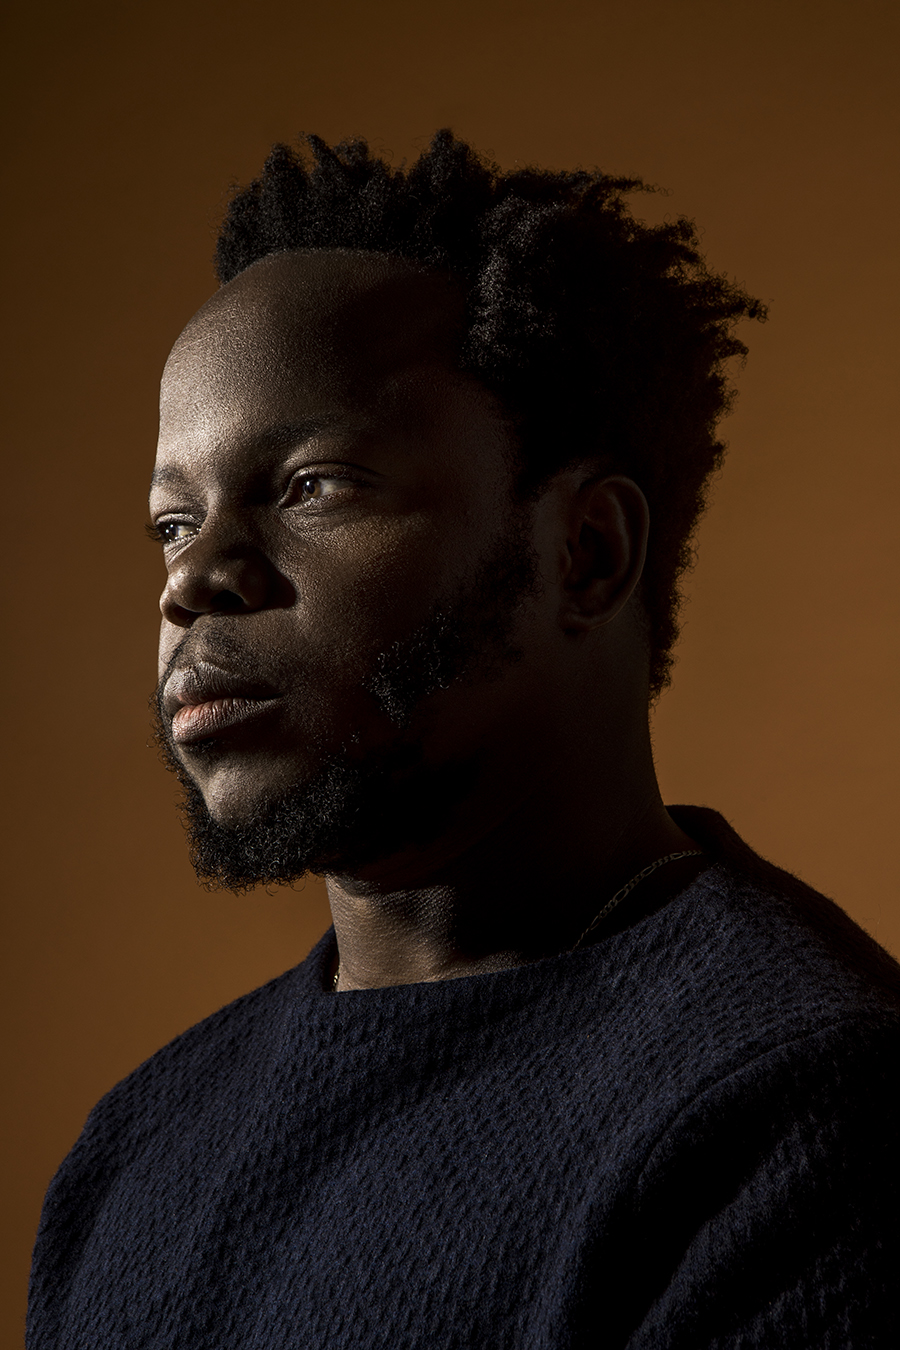 The Ambrose Akinmusire Quartet plays the Jay Pritzker Pavilion at 6:25PM on Friday.